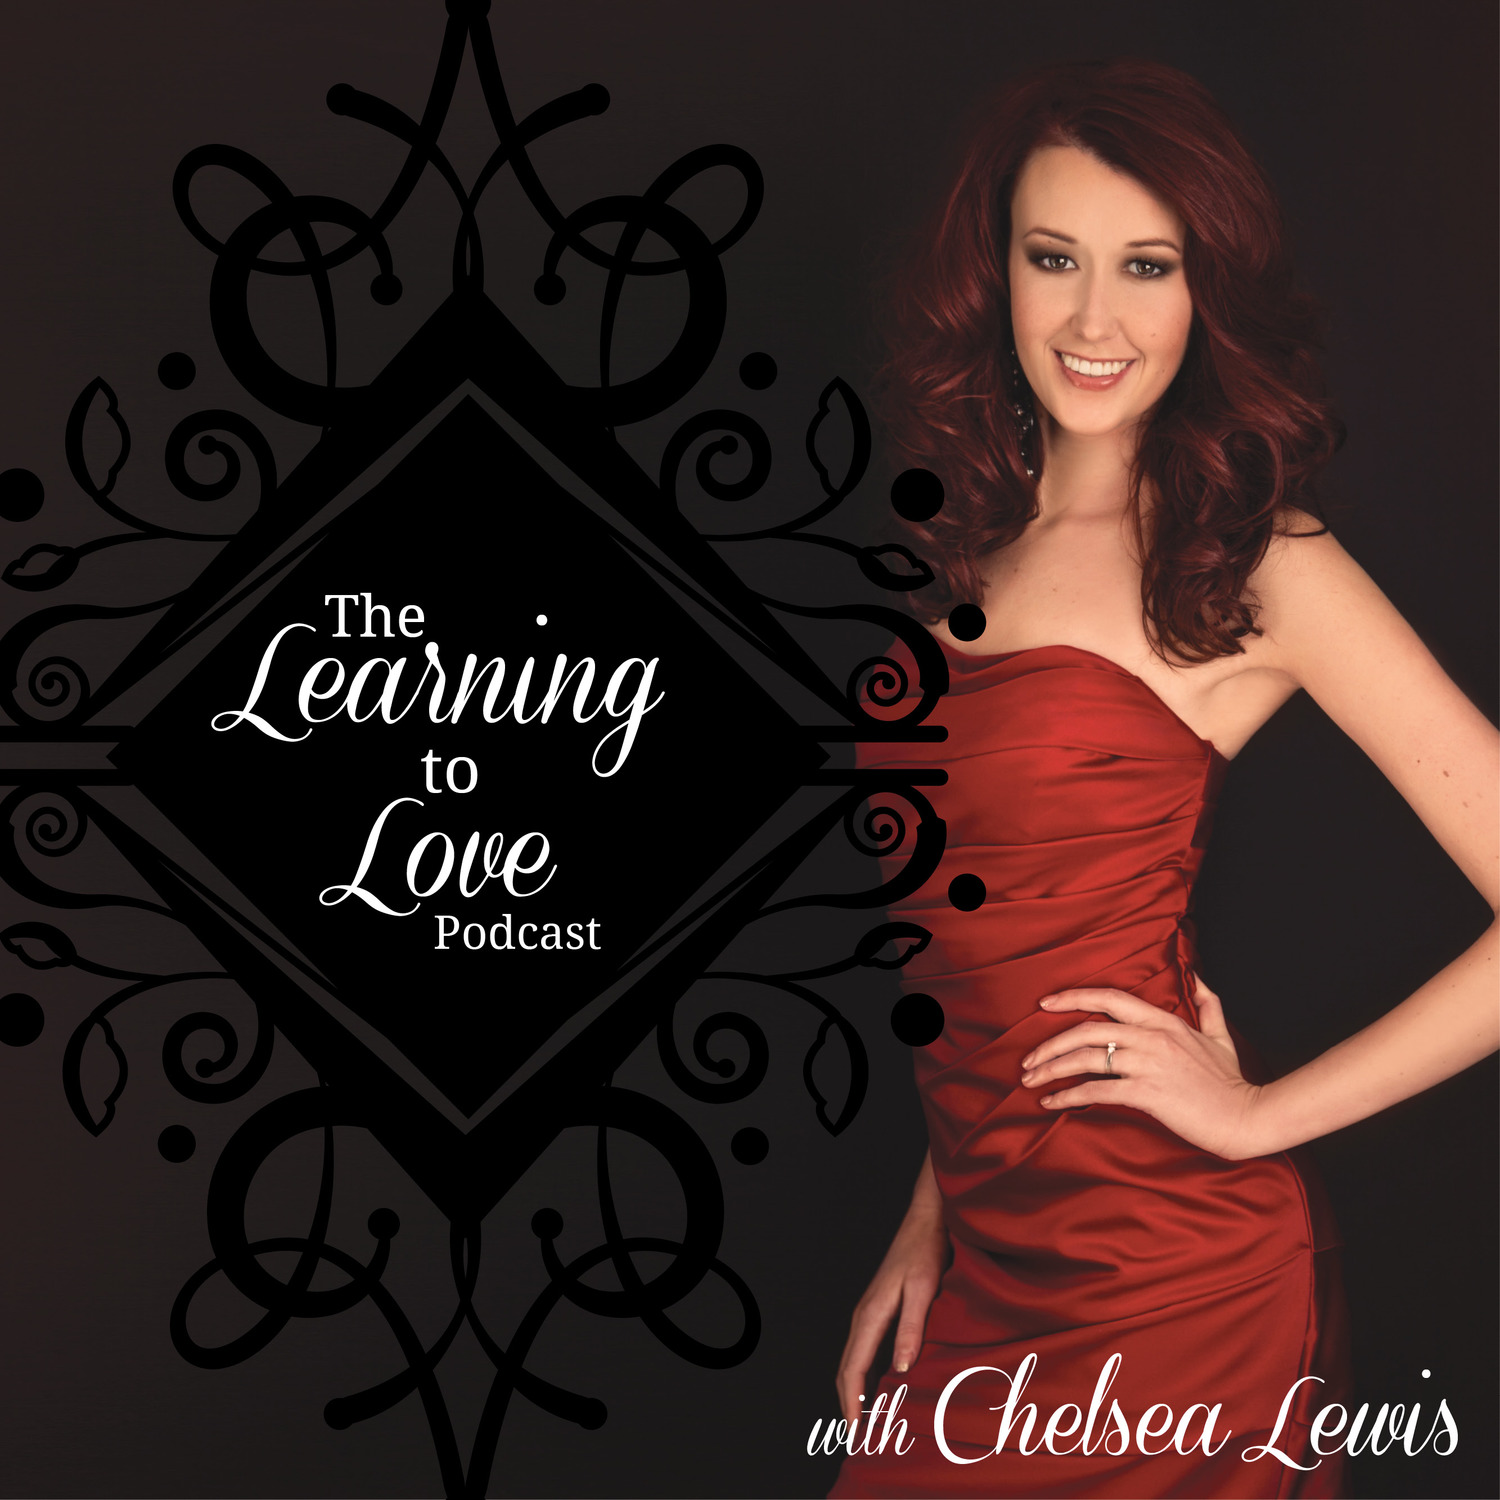 Learning to Love Podcast - Chelsea Lewis Portraits